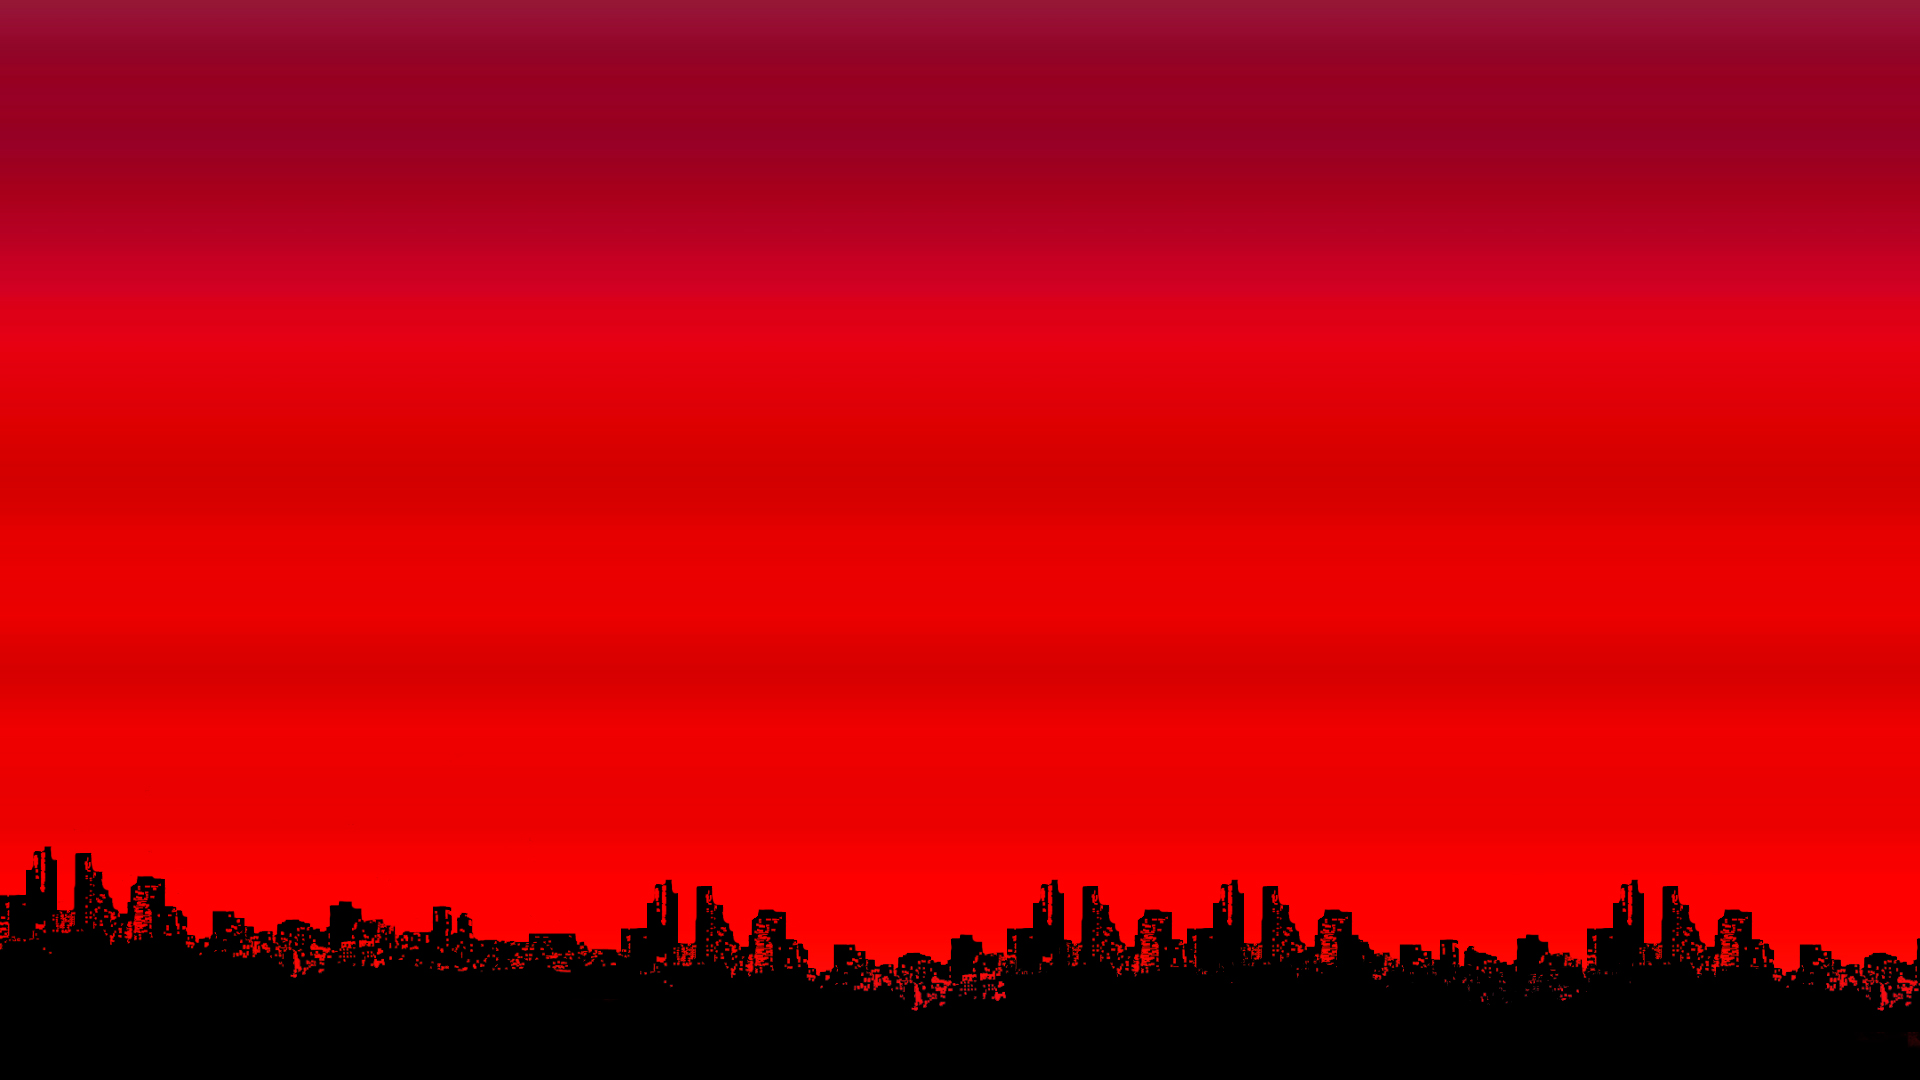 awesome abstract red black jungle image picture hd